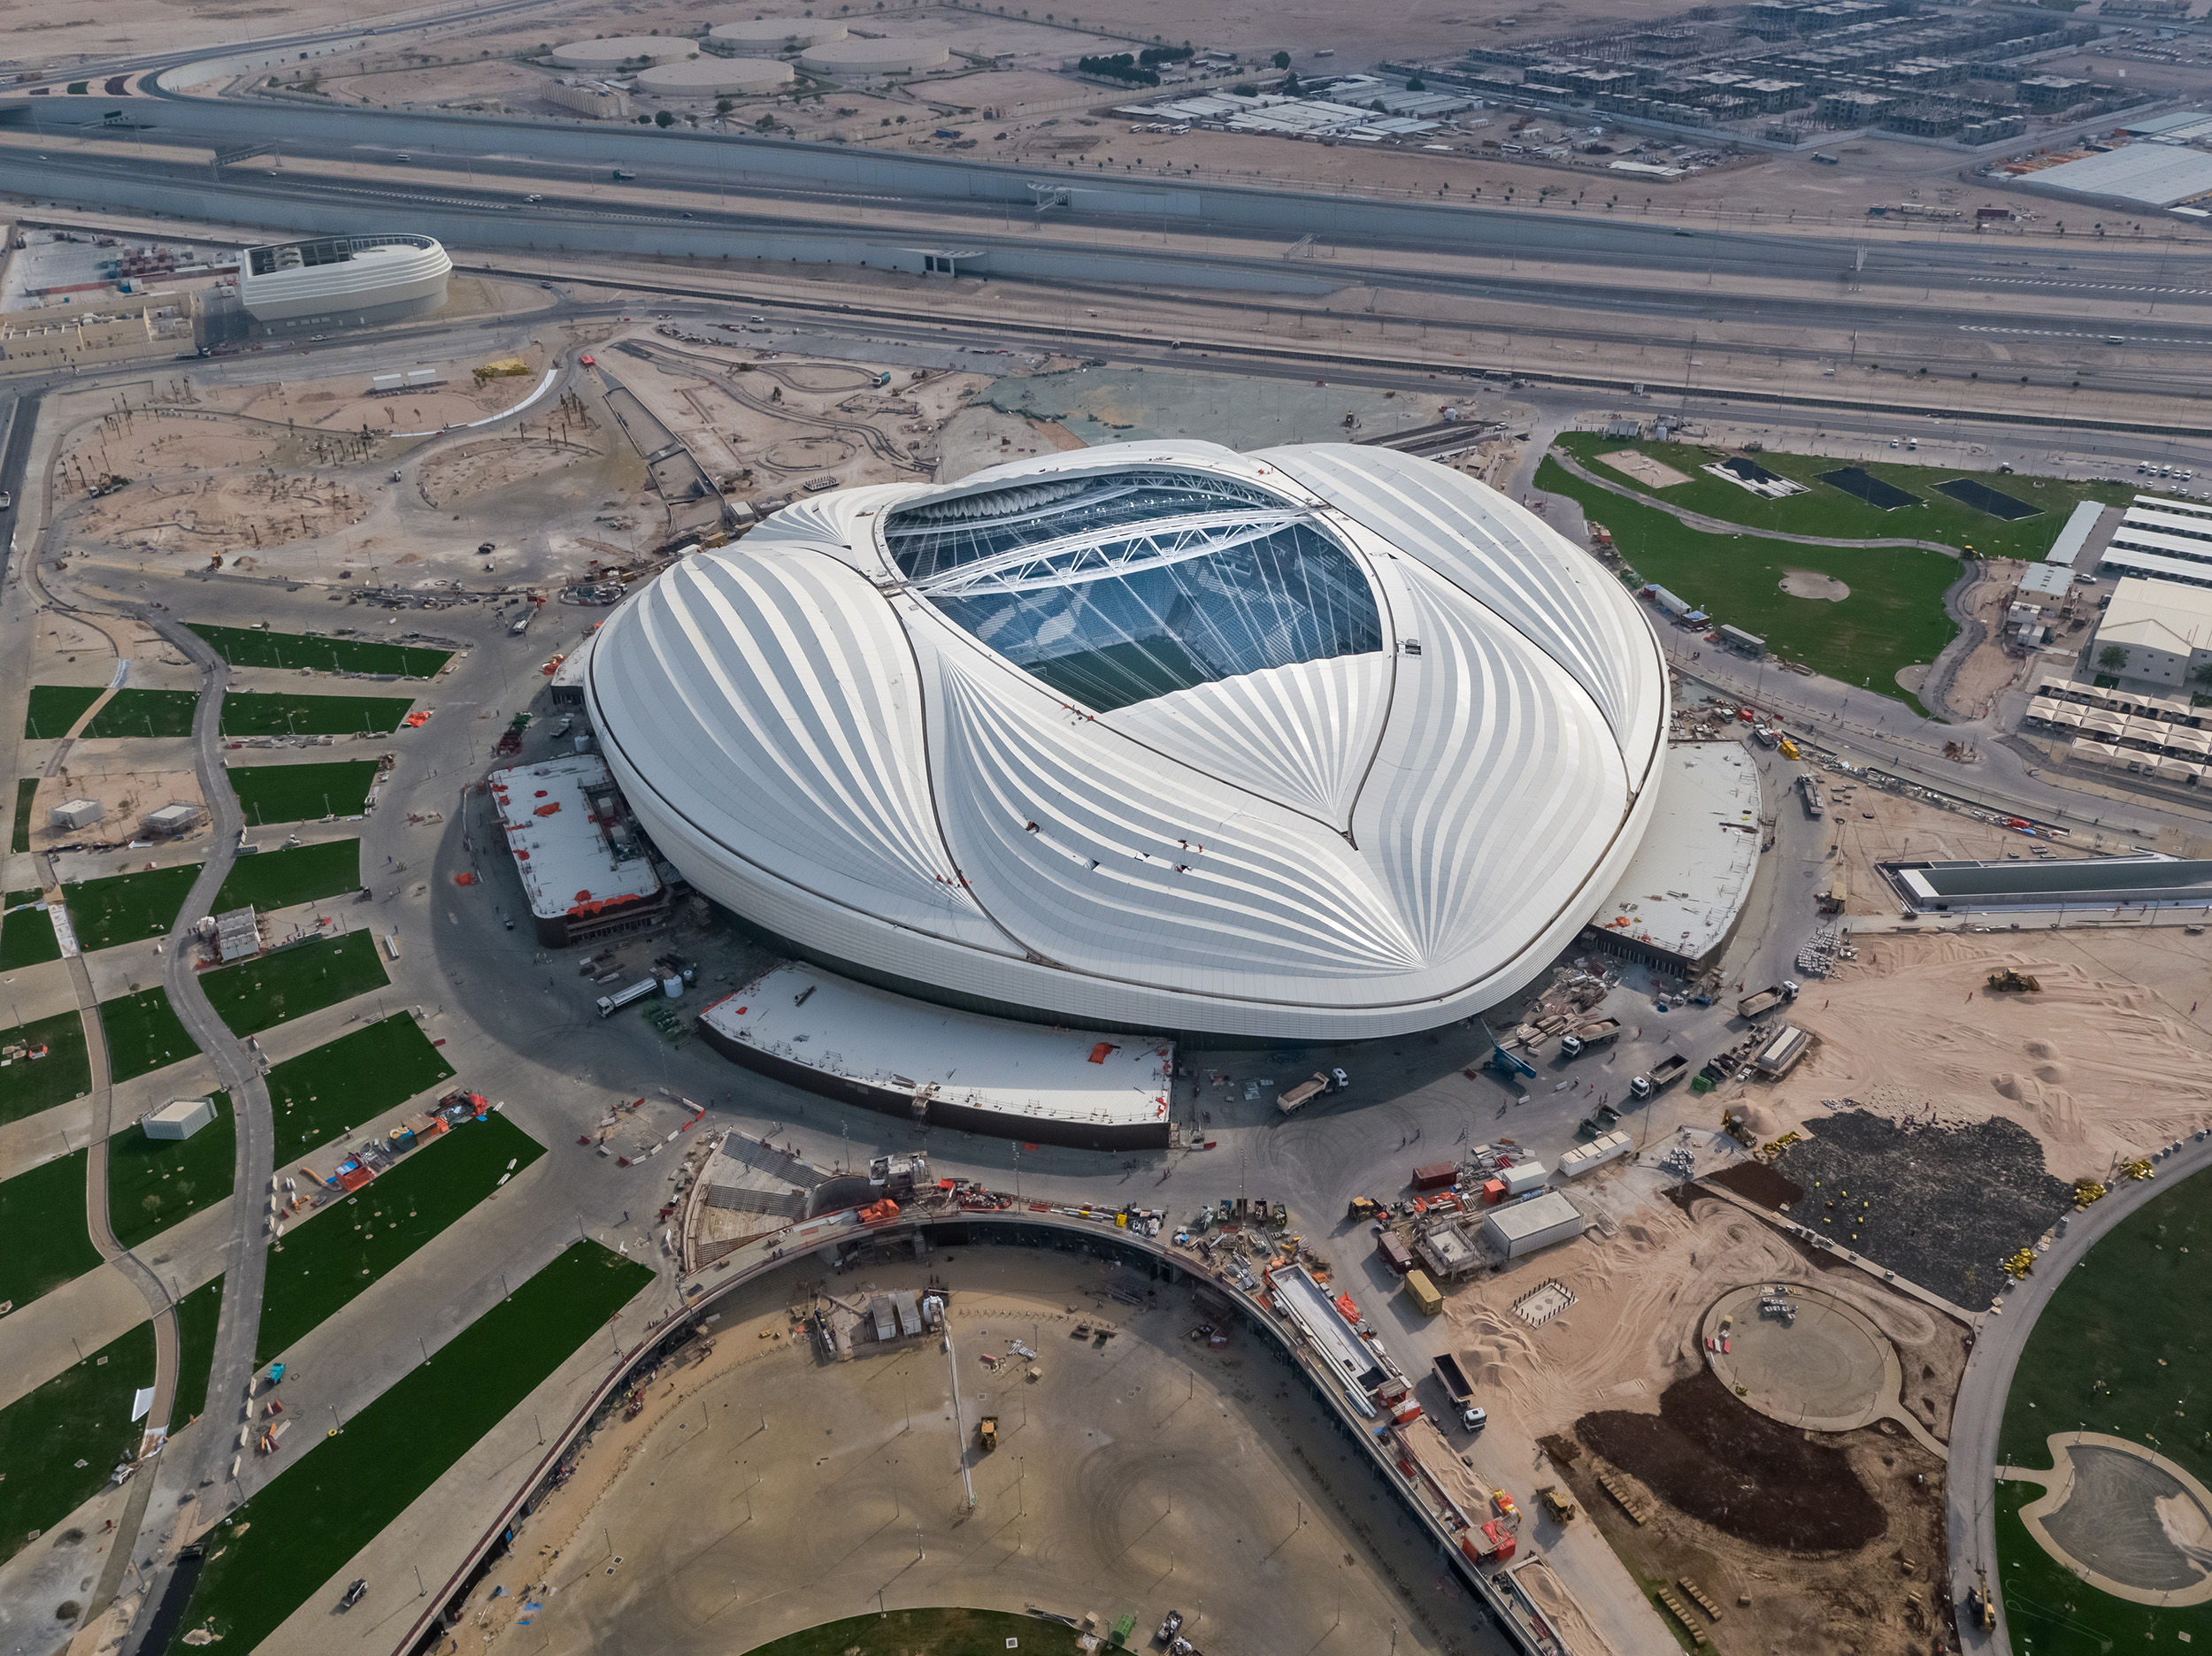 A view of the Al Wakrah stadium from outside [Supreme Committee for Delivery & Legacy]